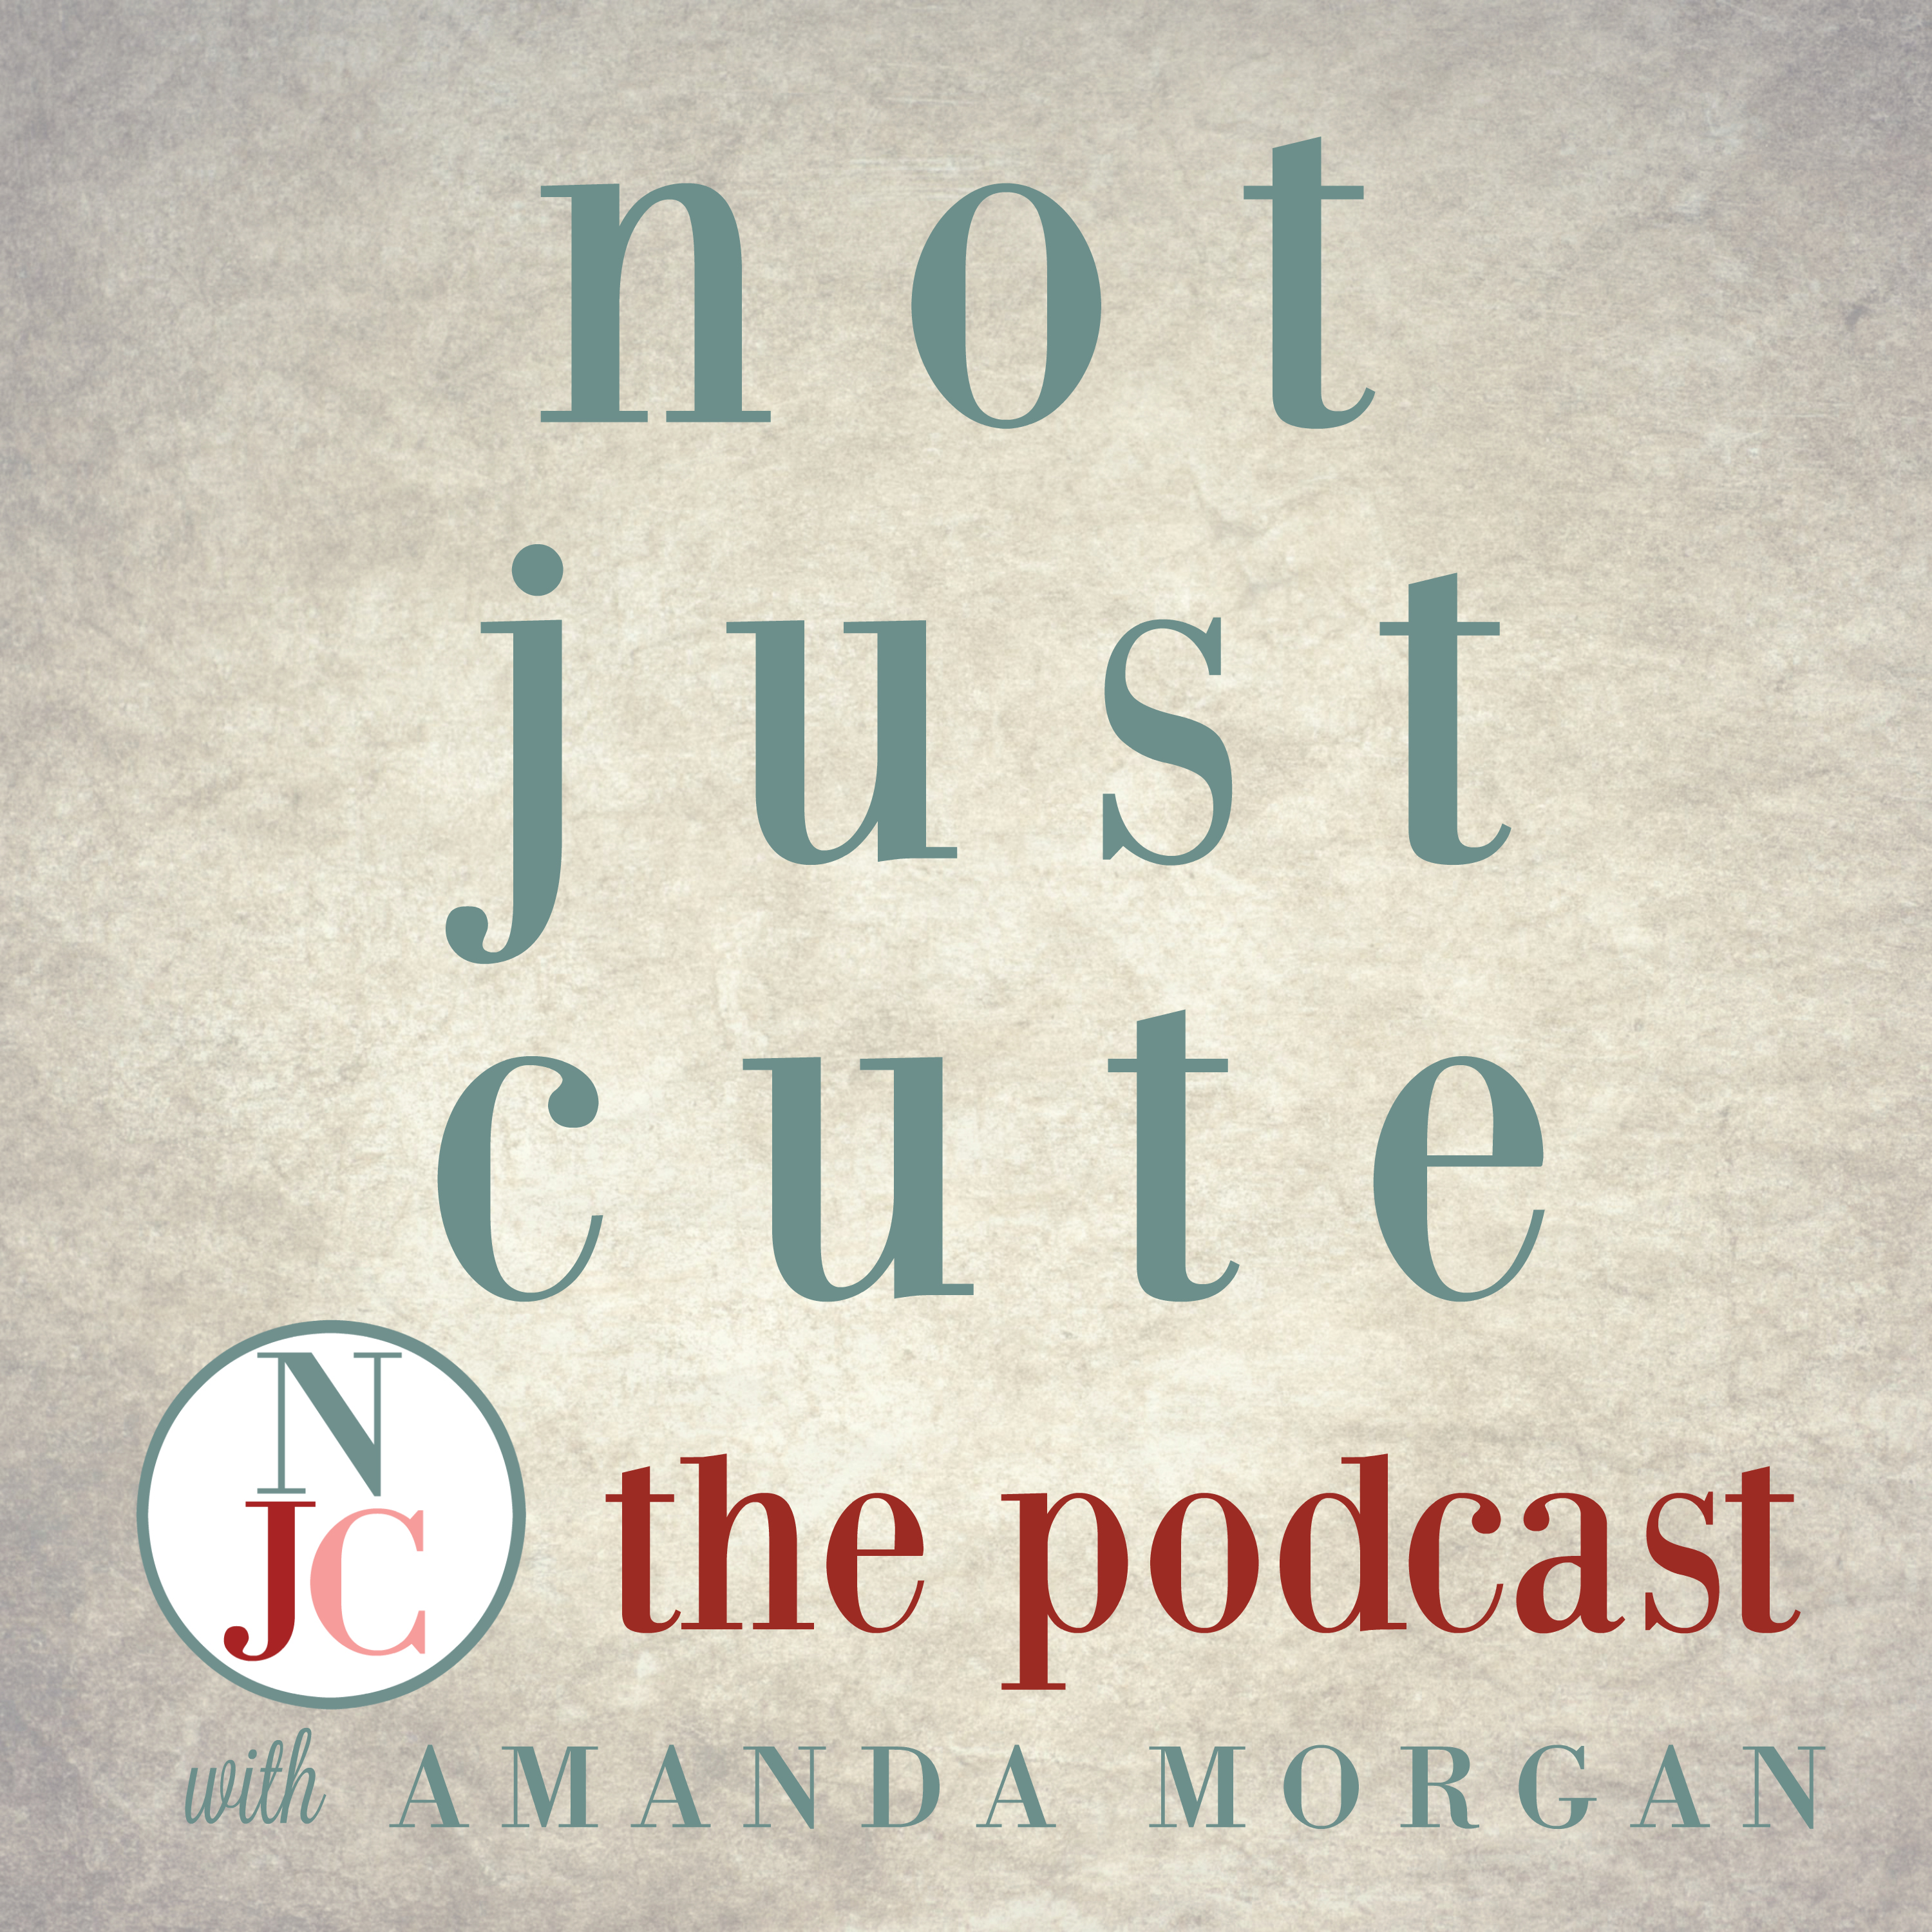 Not Just Cute, the Podcast: Intentional Whole Child Development for Parents and Teachers of Young Children show art